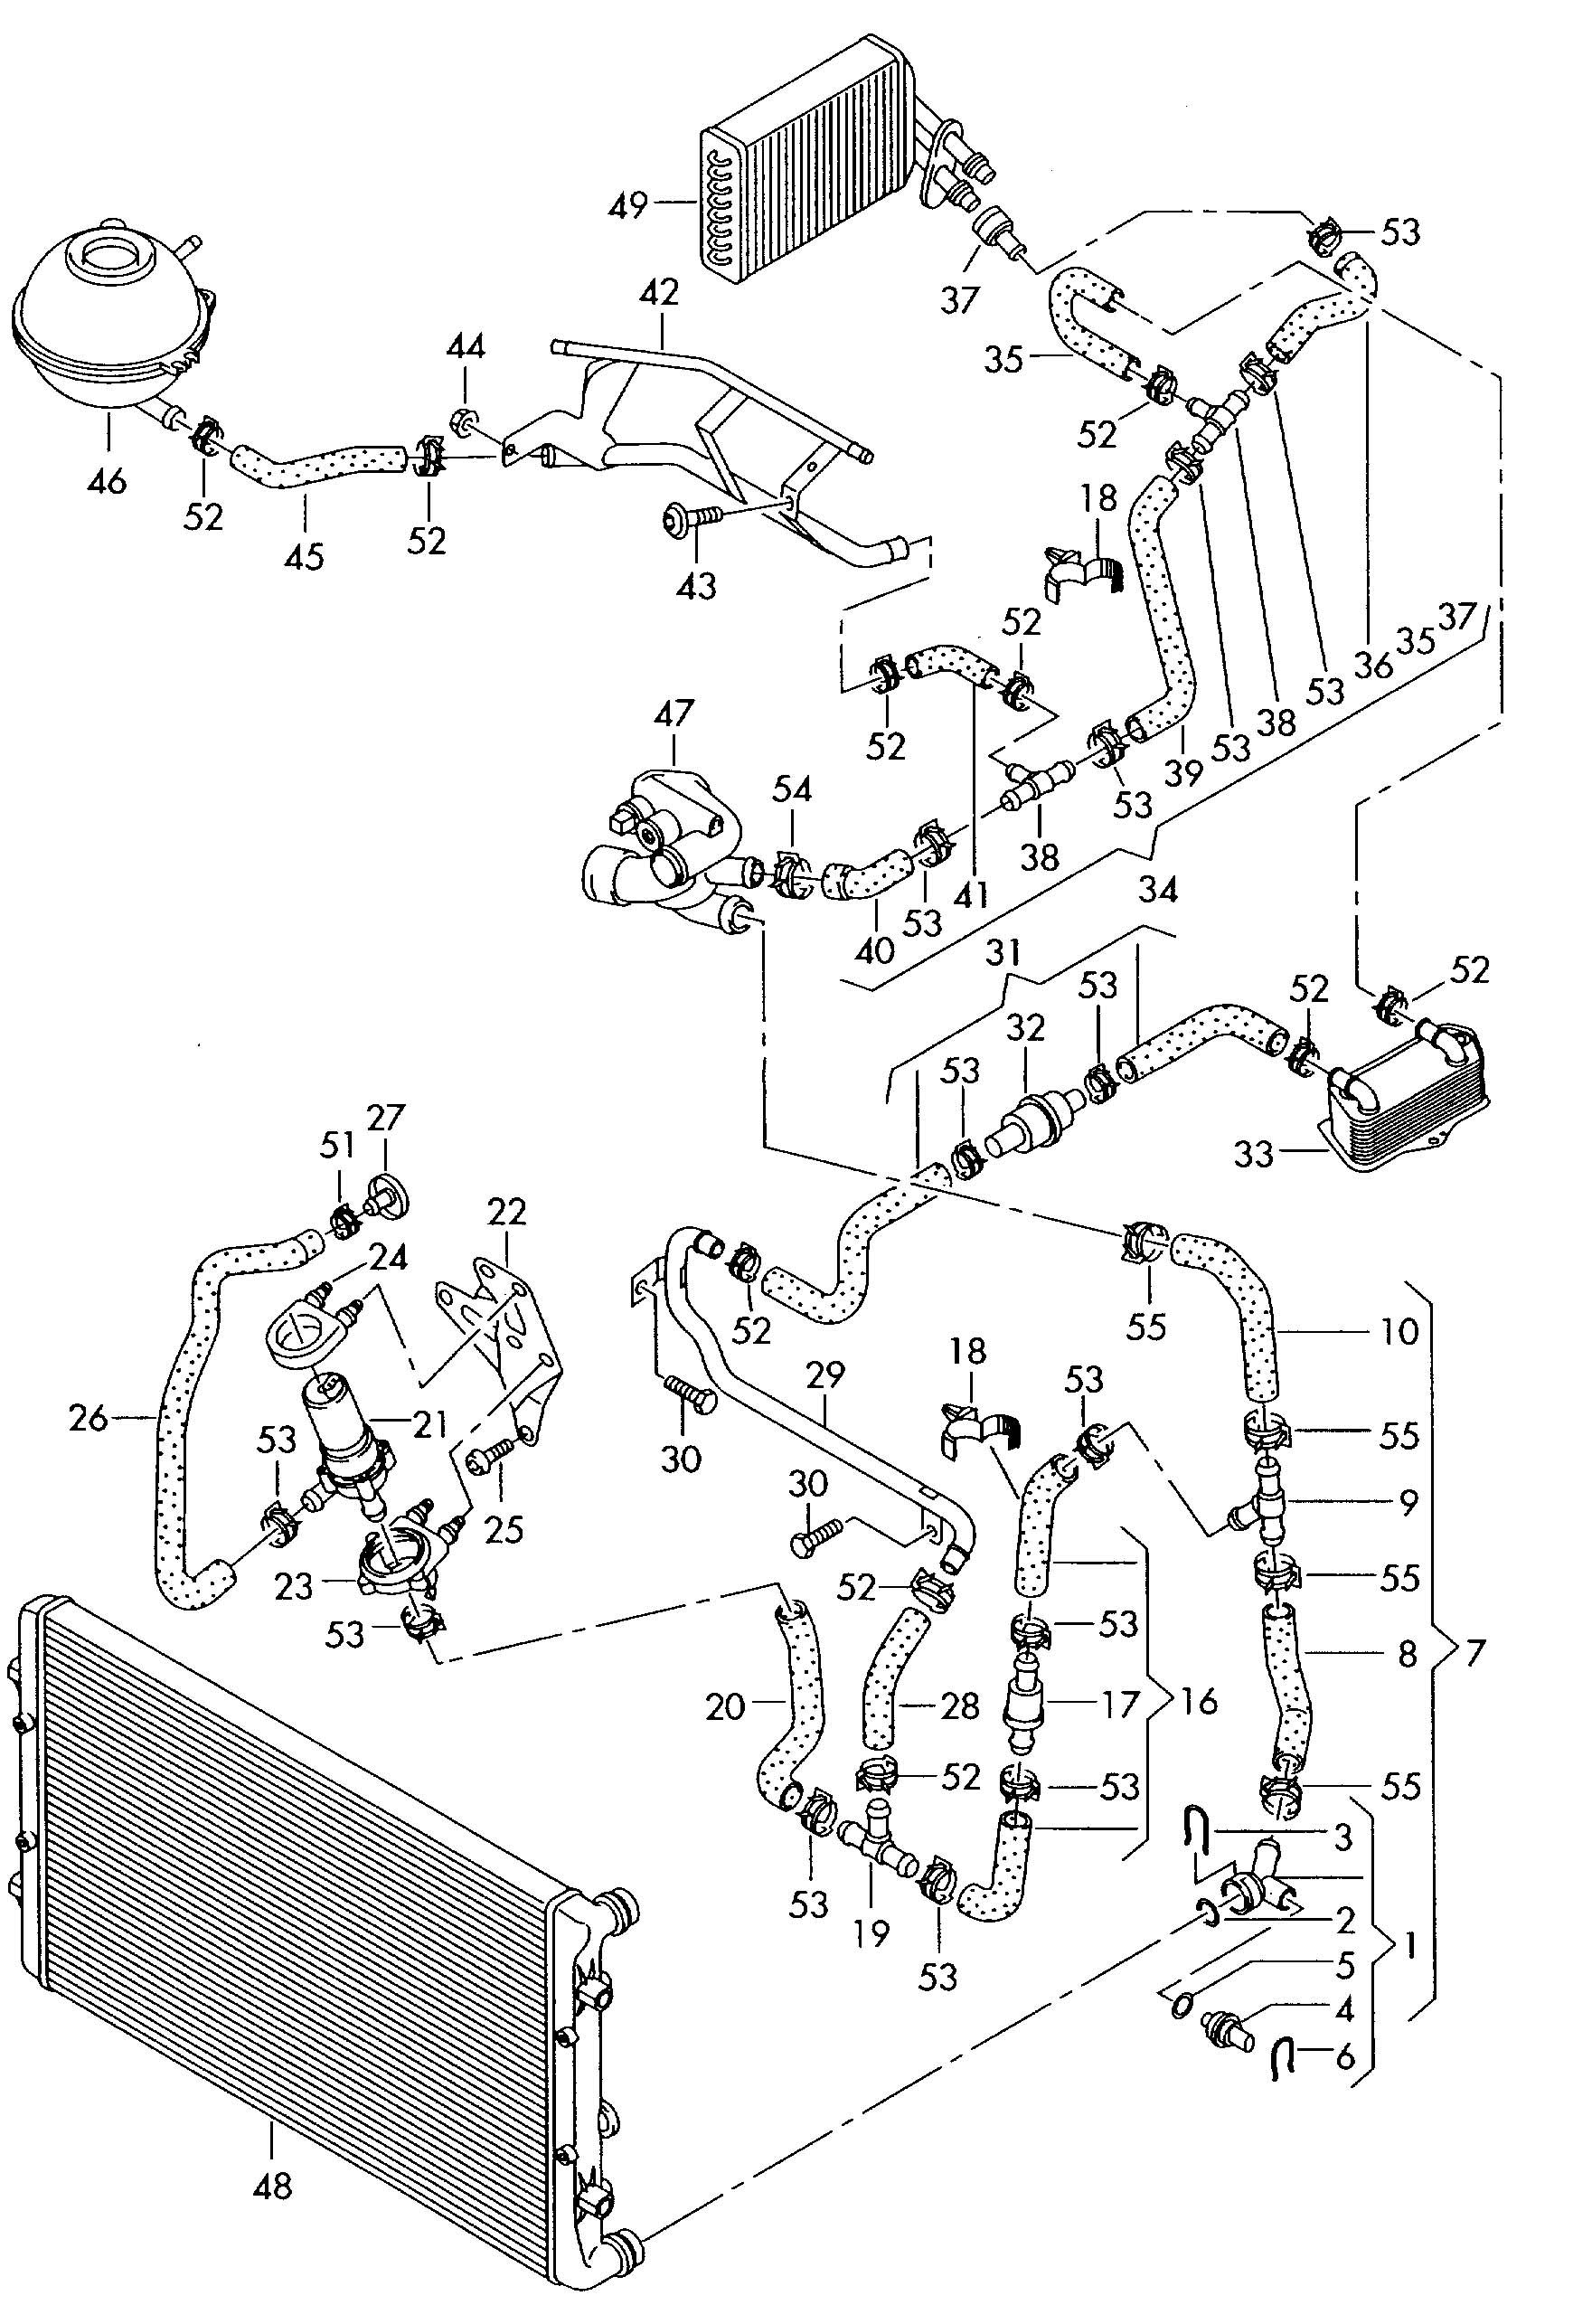 cooling system diagram audi a3